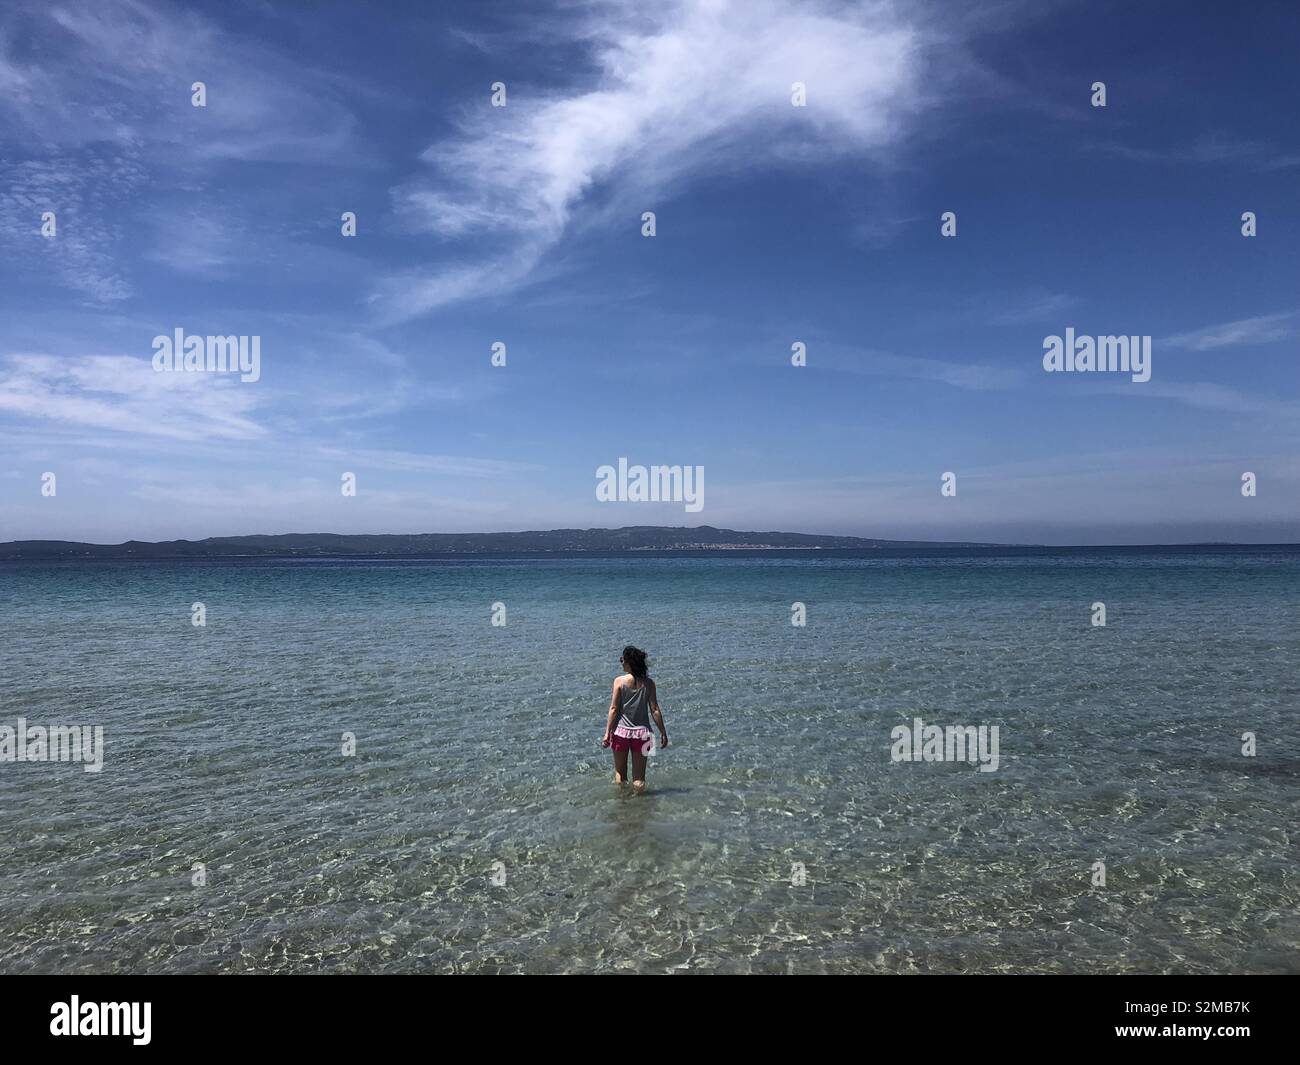 Skinny Dipping Arm Dropping Top Stock Photo - Image of